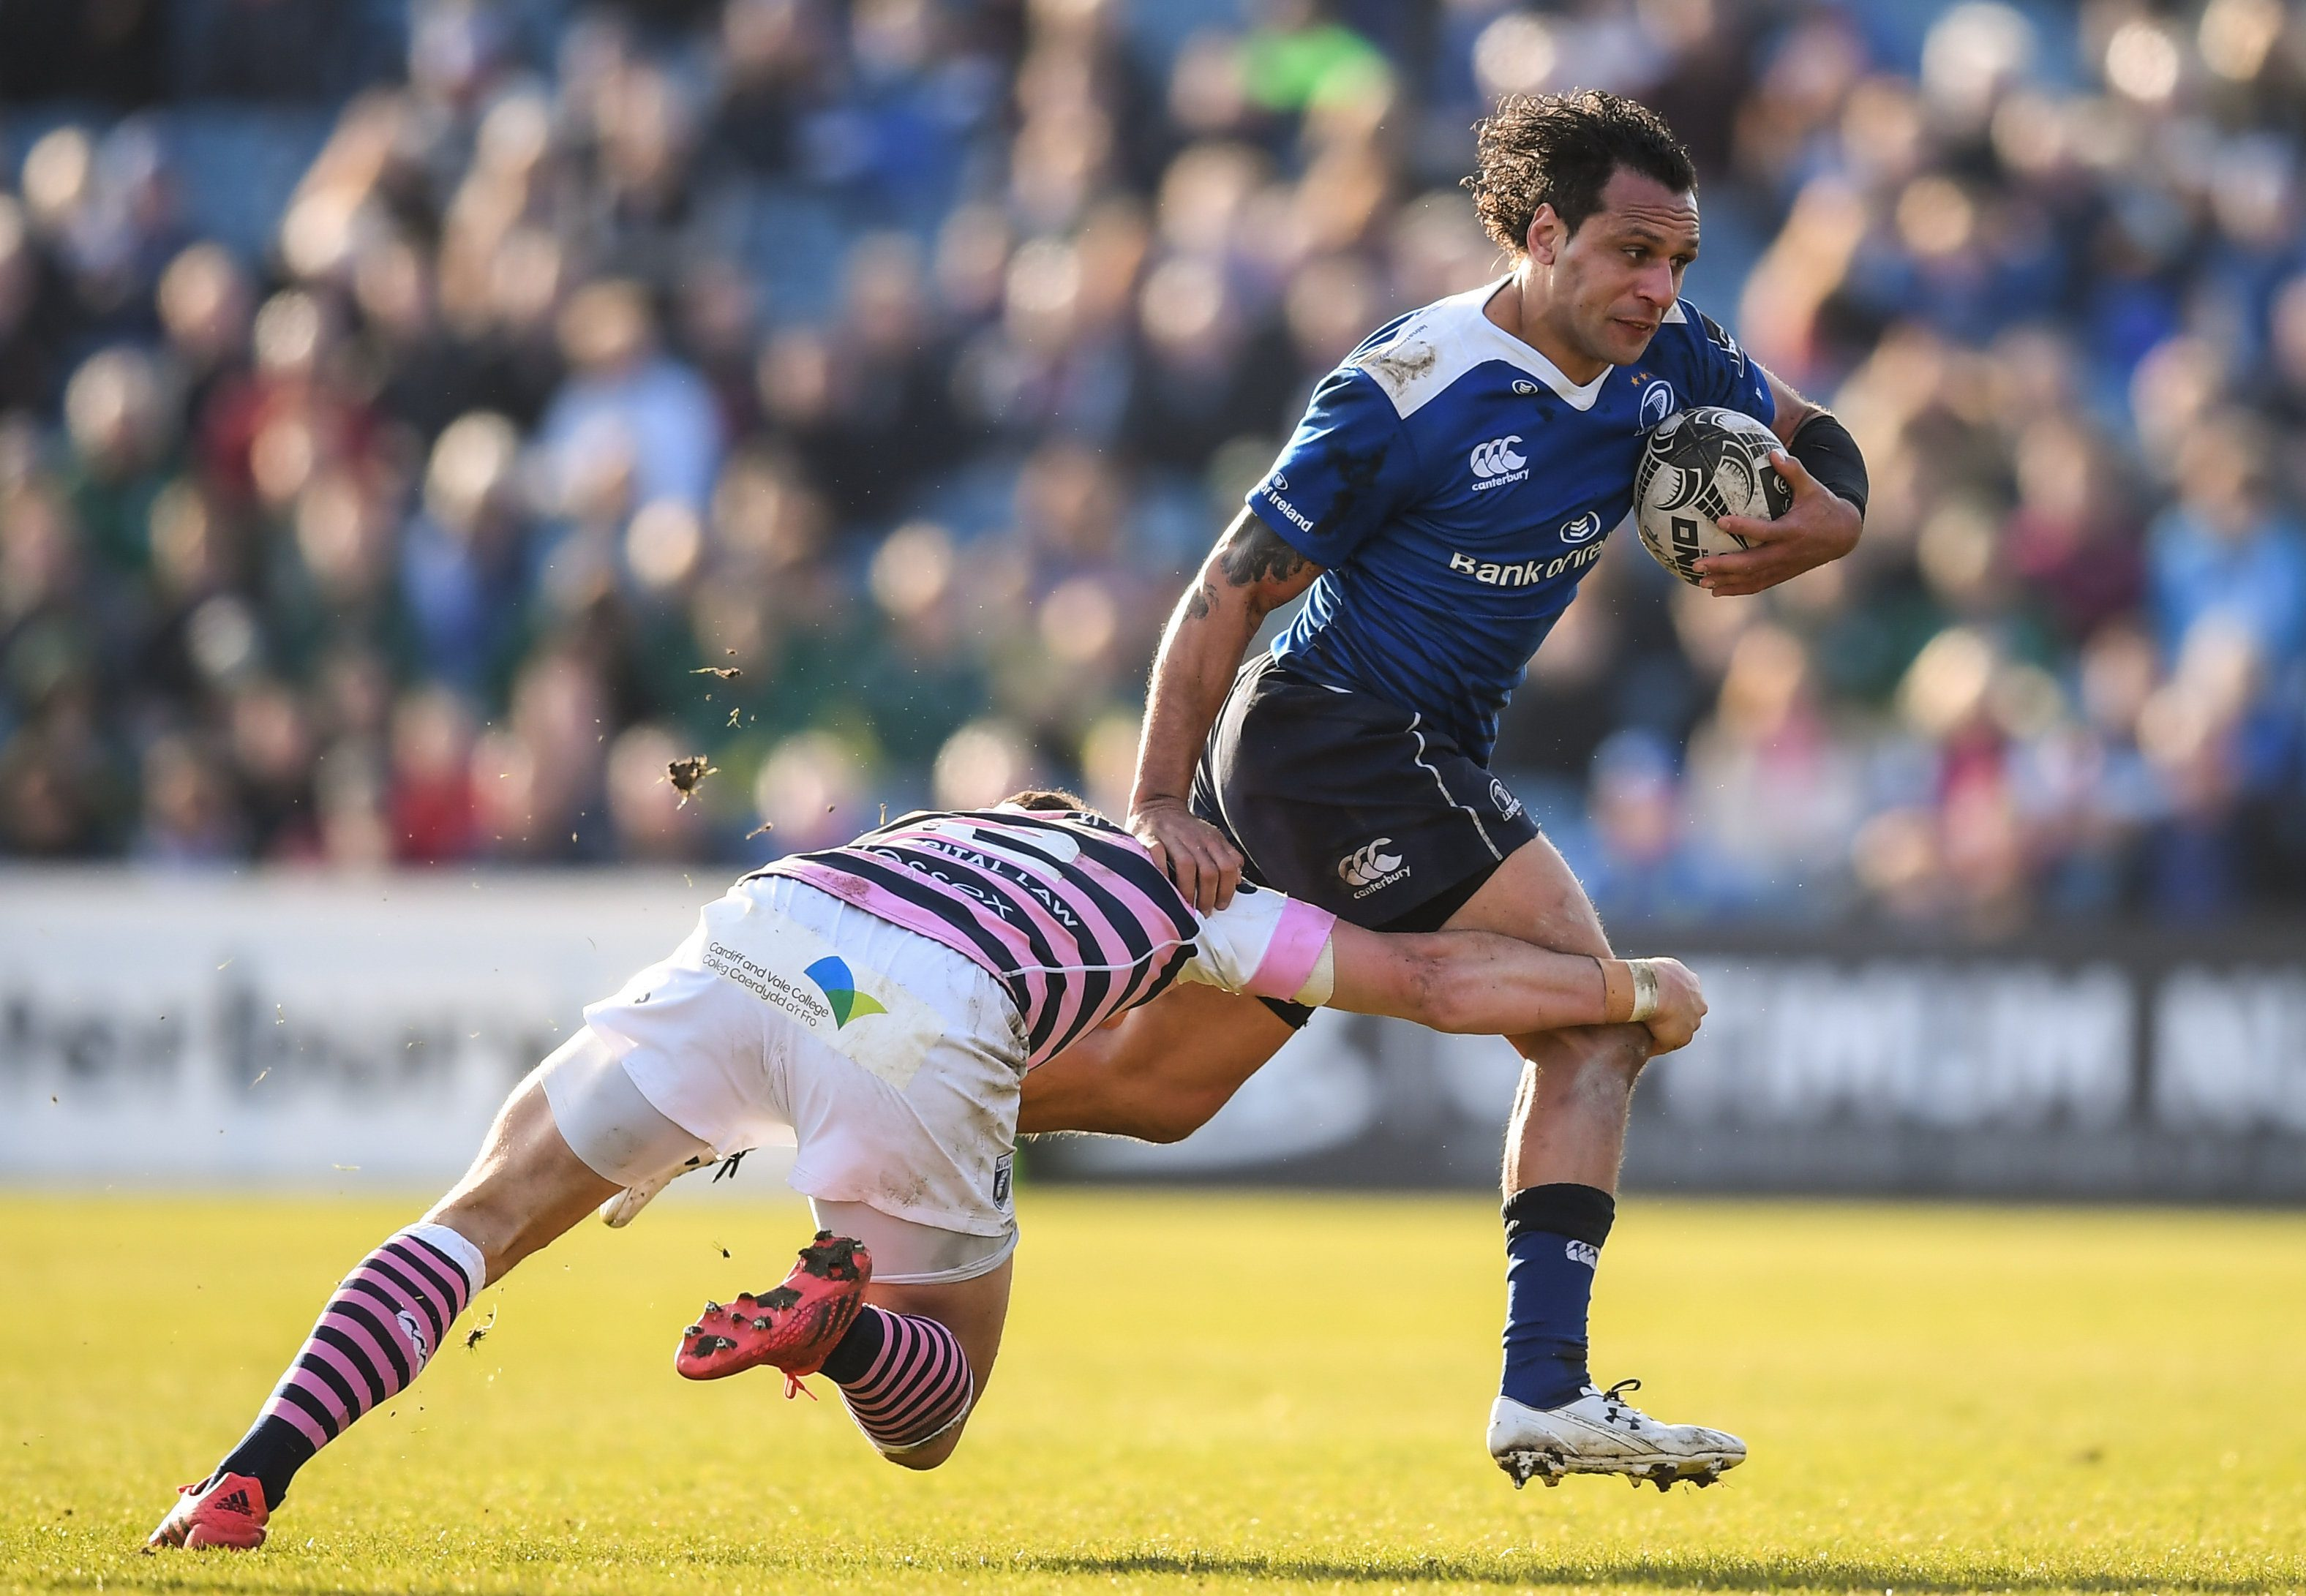 e36c02a02bb Leinster Rugby | Leinster v Cardiff Blues – Guinness PRO12 Round 18